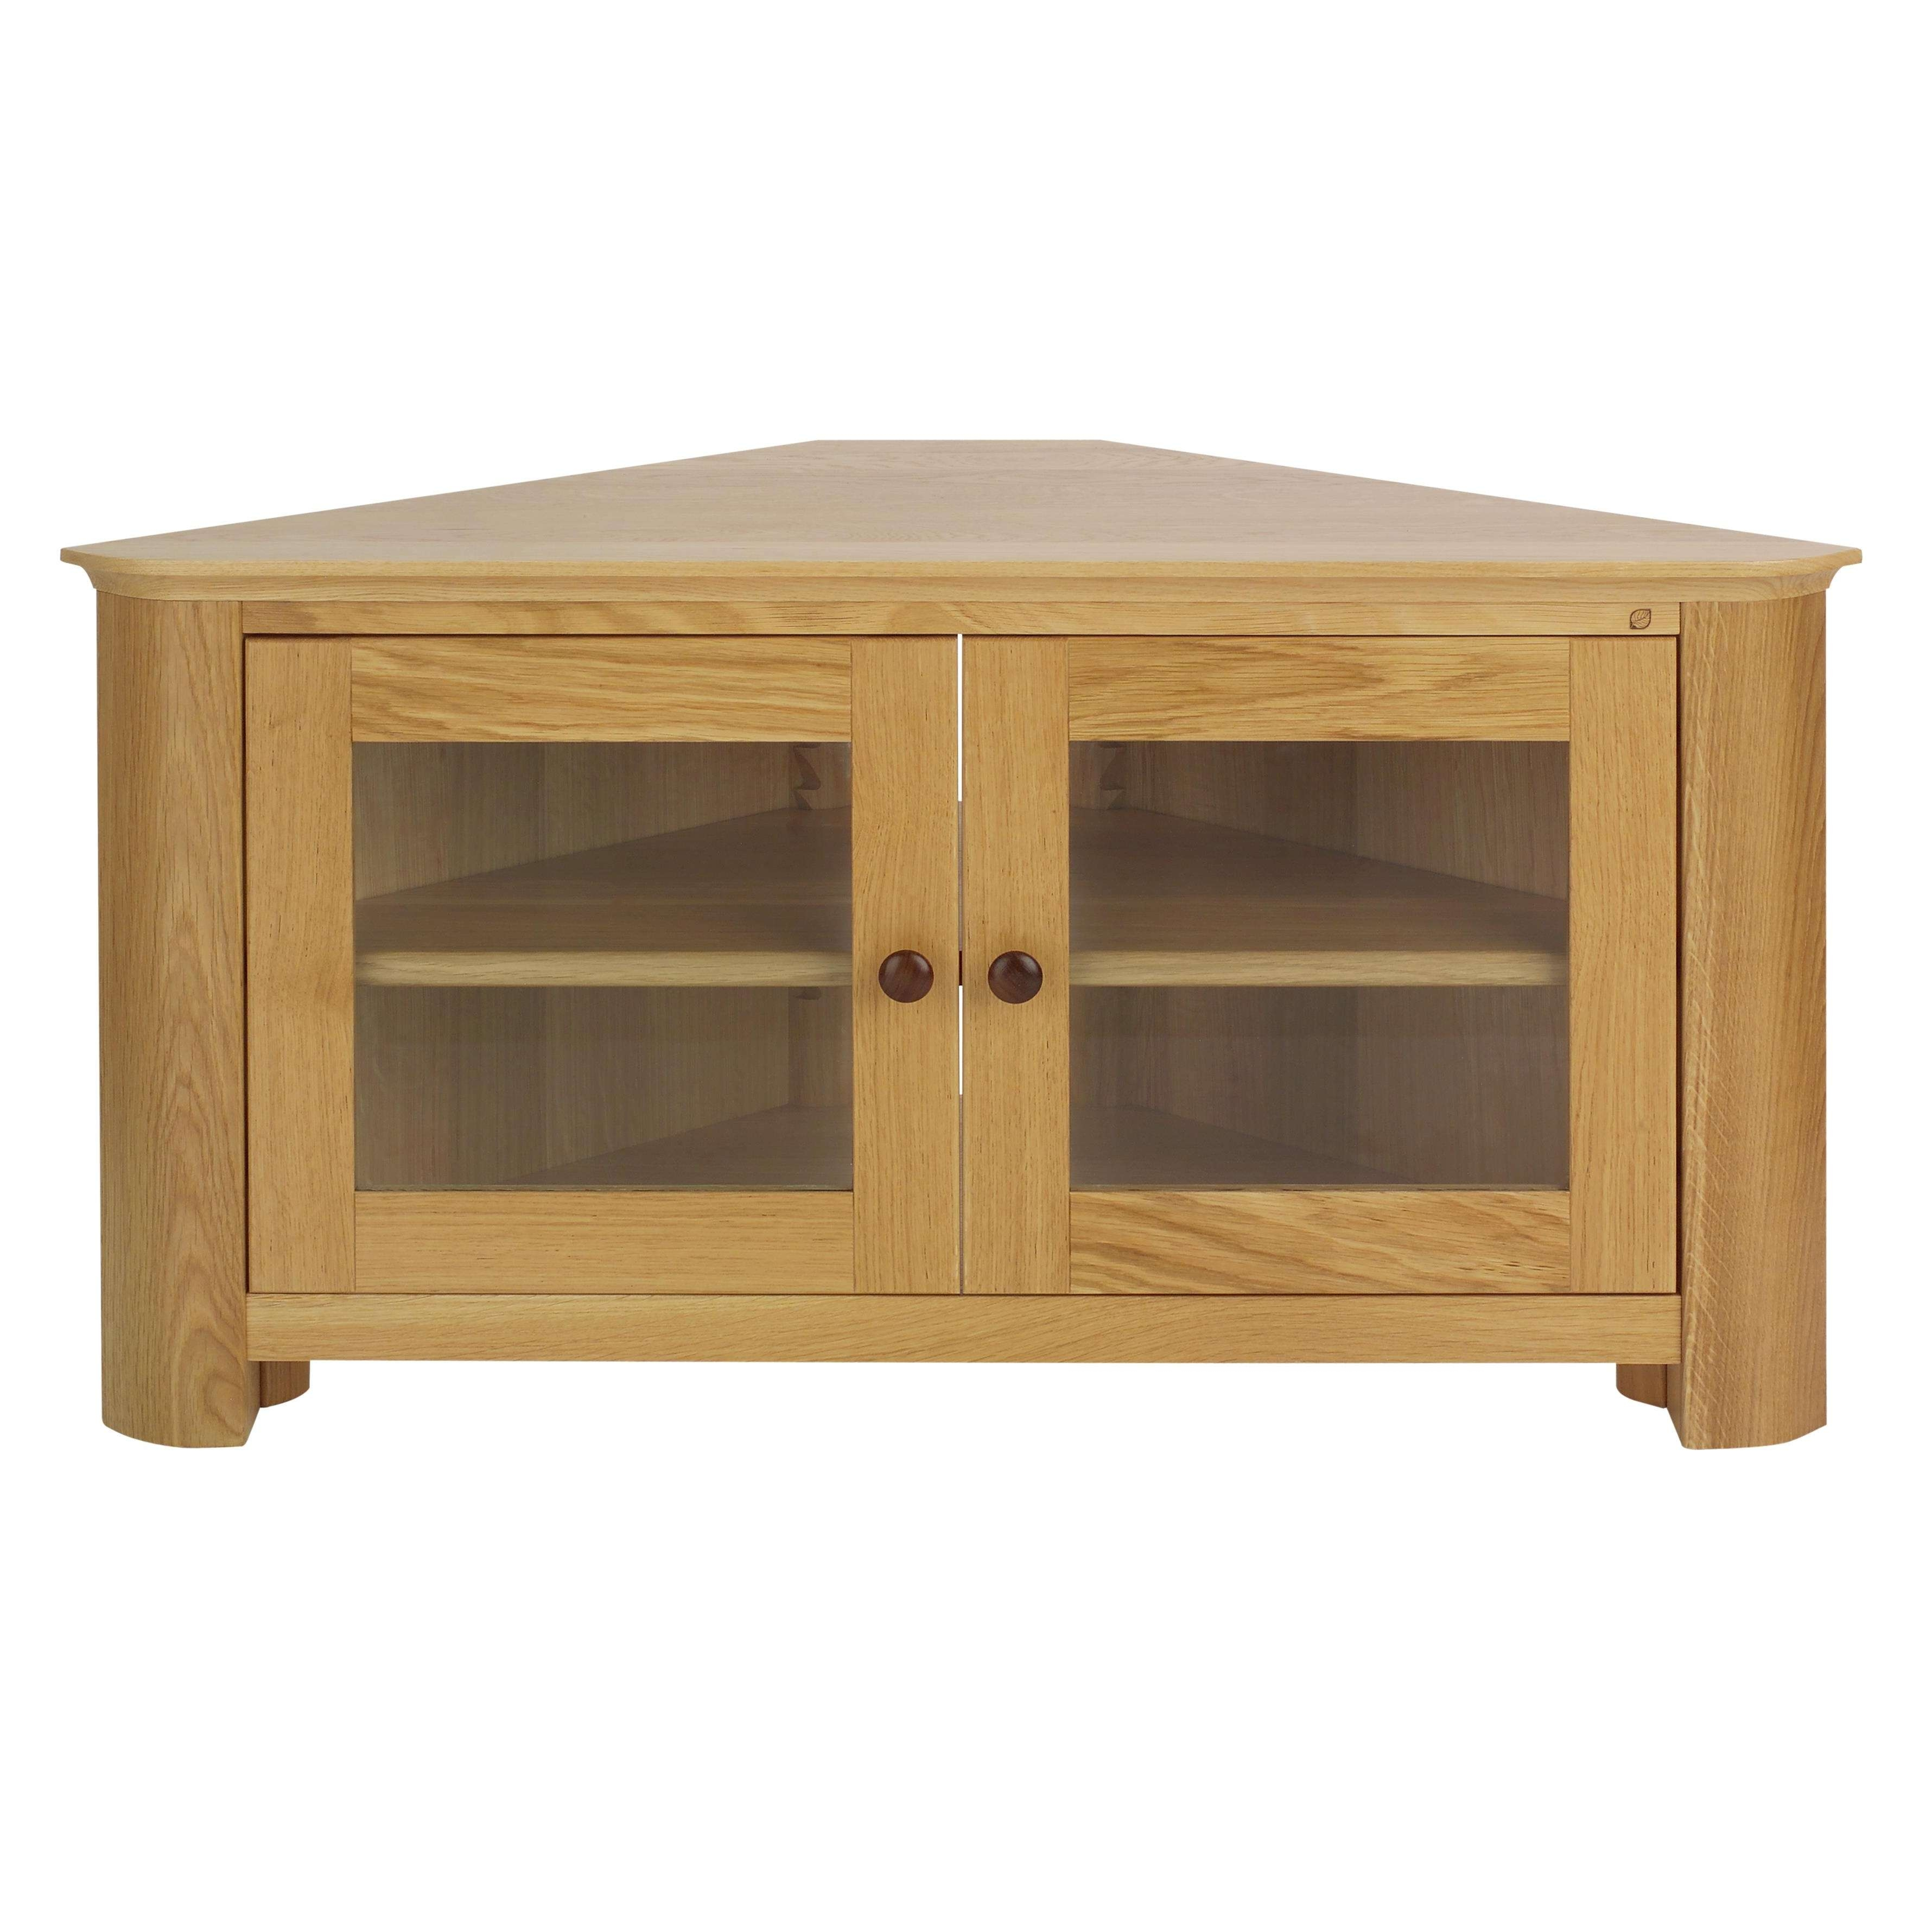 Corner Tv Cabinet With Doors • Corner Cabinets With Regard To Wooden Tv Cabinets With Glass Doors (View 3 of 20)